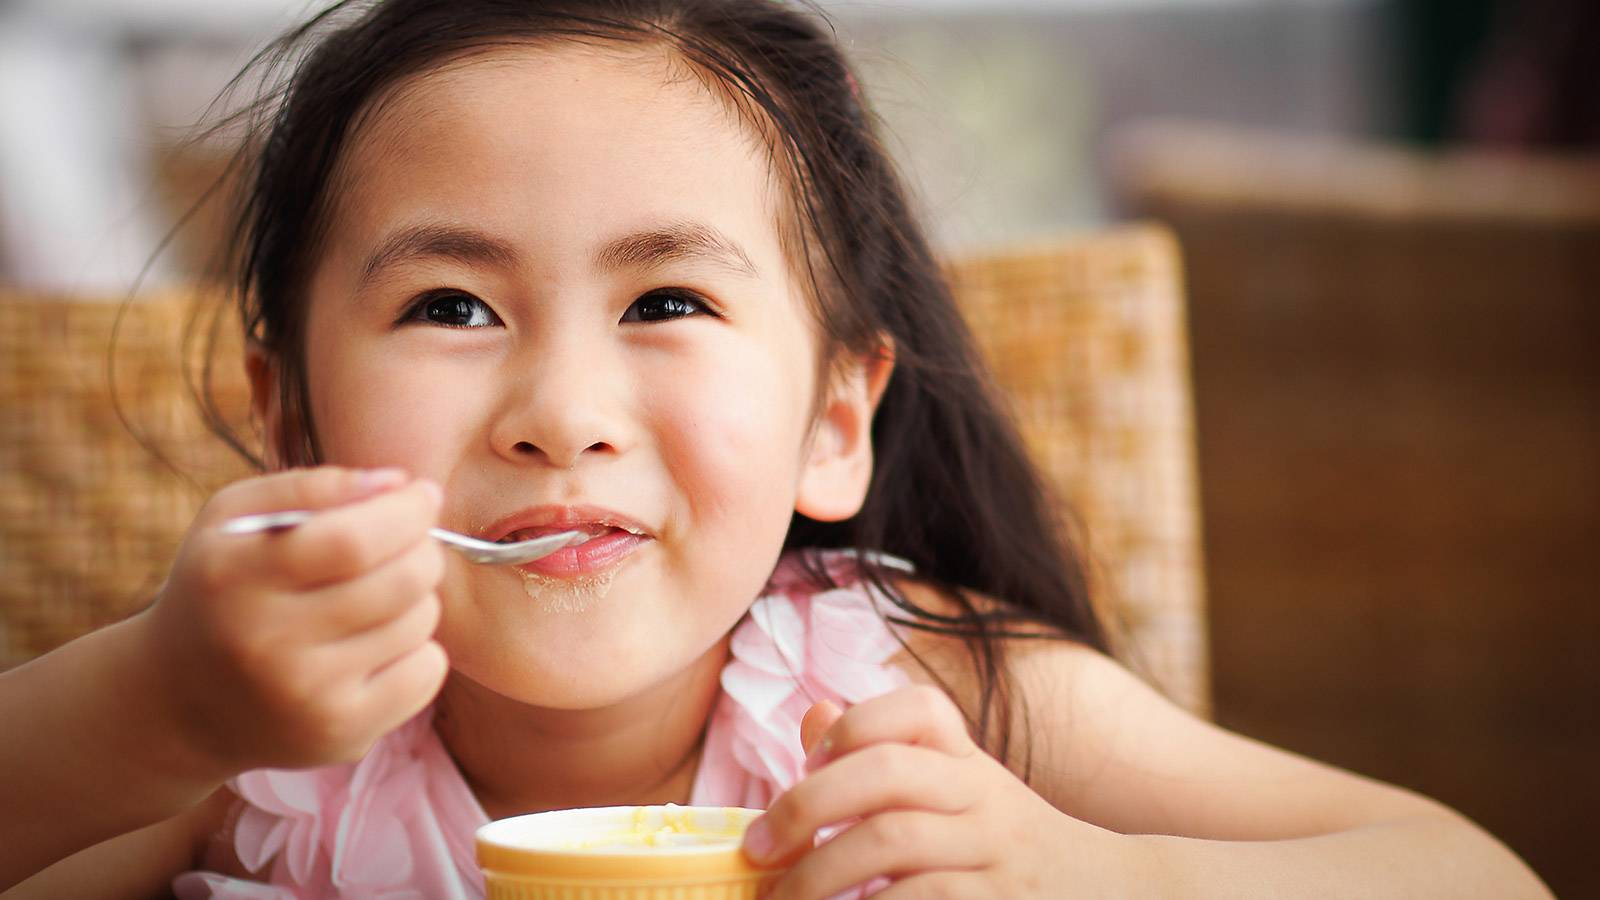 Kids-CONVERSATIONS-WITH-A-Dietitian-3